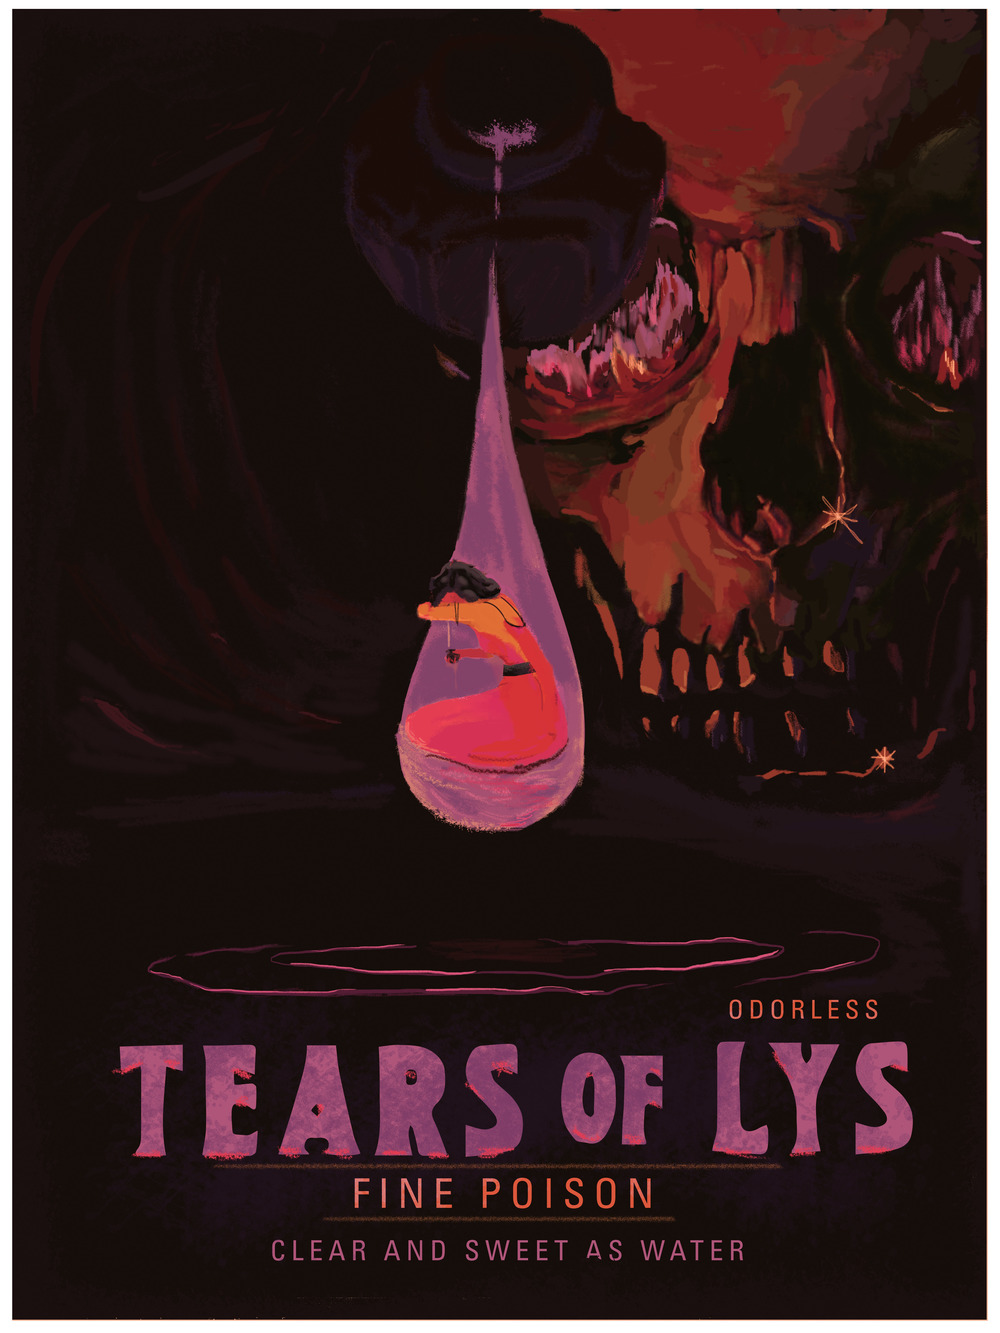 "Tears Of Lys 18"" by 24"" Giclee Print on Archival Paper Signed & Numbered Limited Edition of 100 30.00"